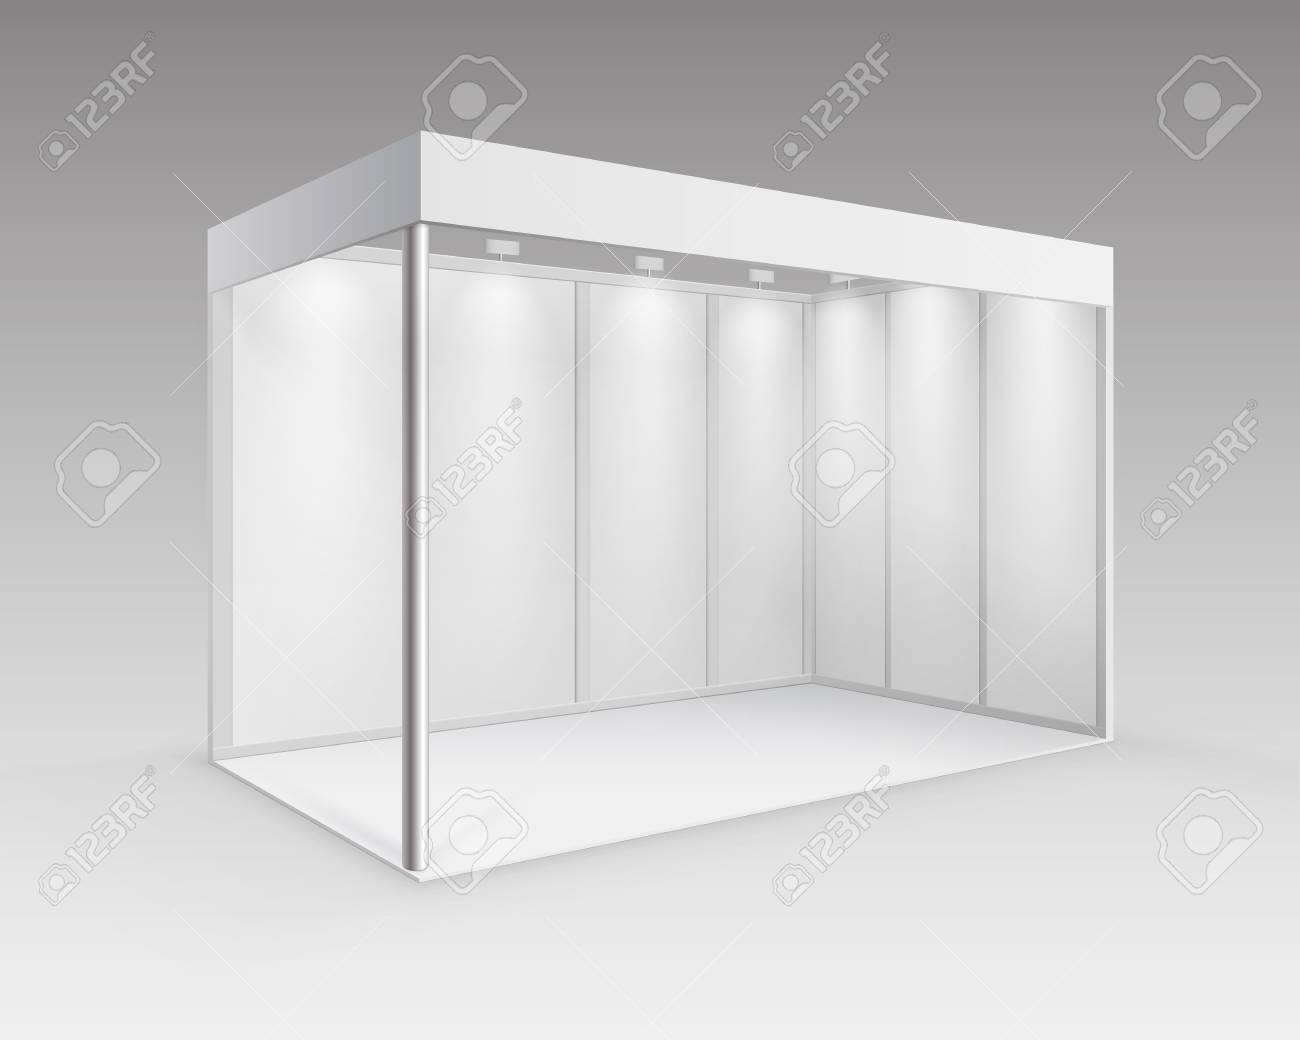 Exhibition Booth Blank : Blank booth exhibition stock photo thinkstock